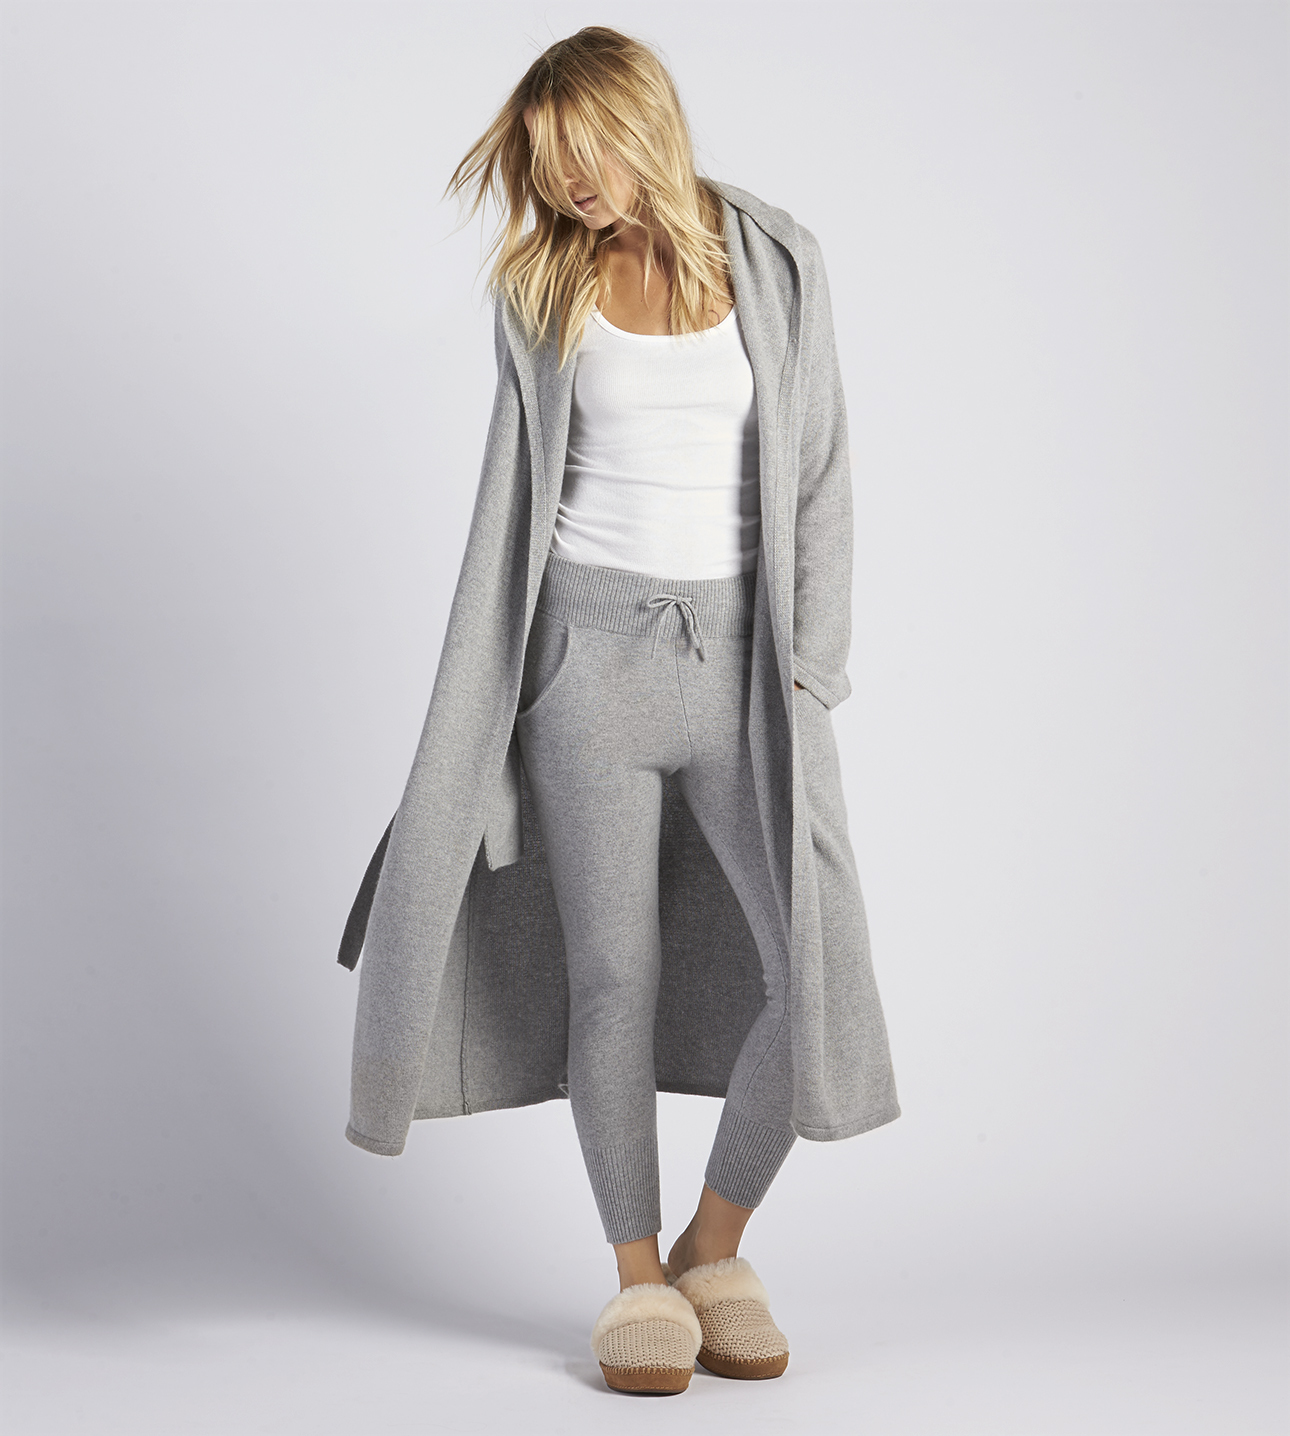 UGG Cashmere Evie Robe (Photo: Business Wire)